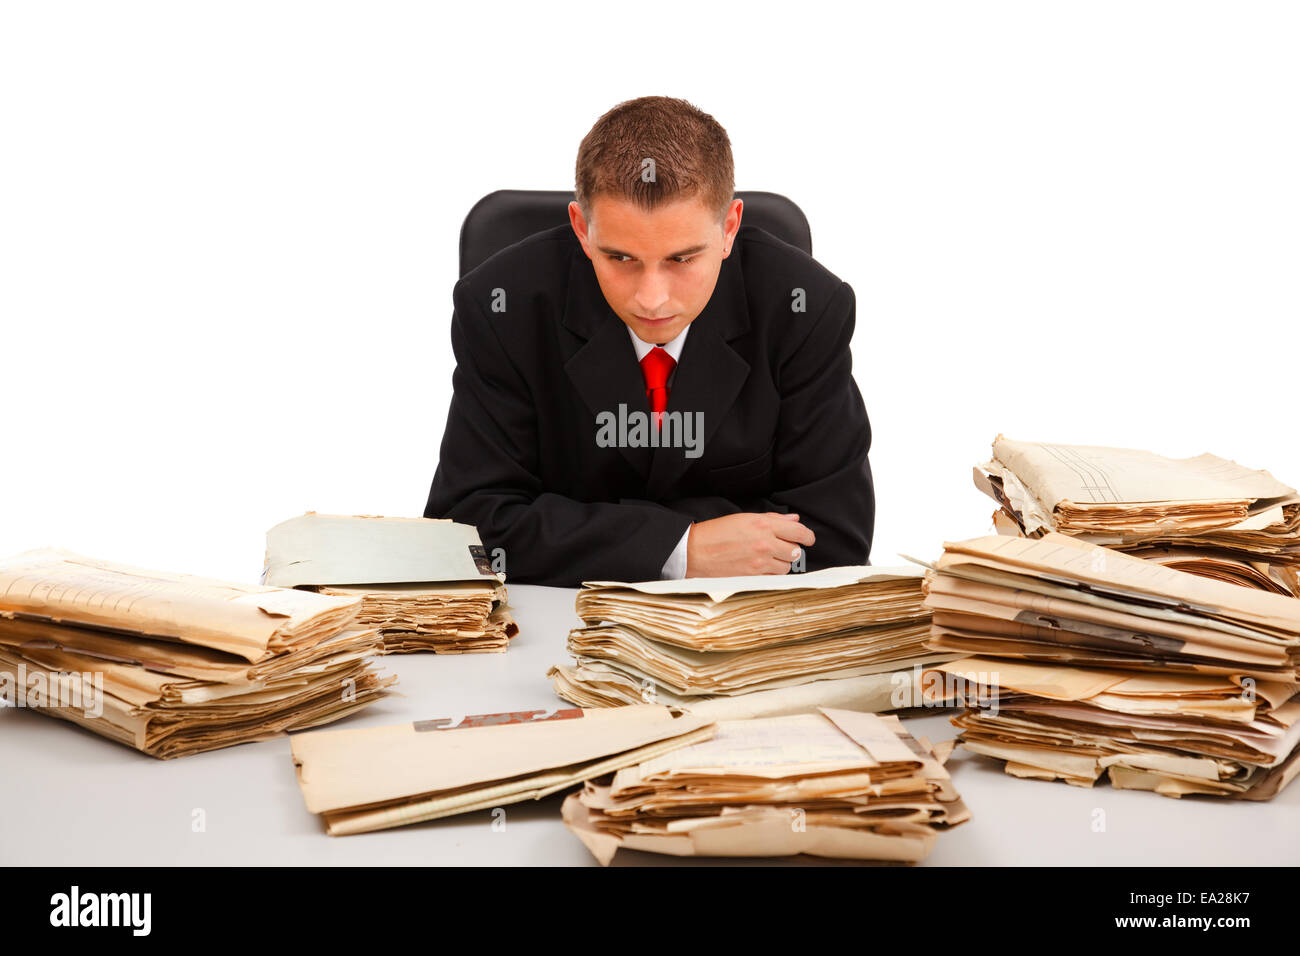 Business man looking at the huge amount of documents on table - Stock Image